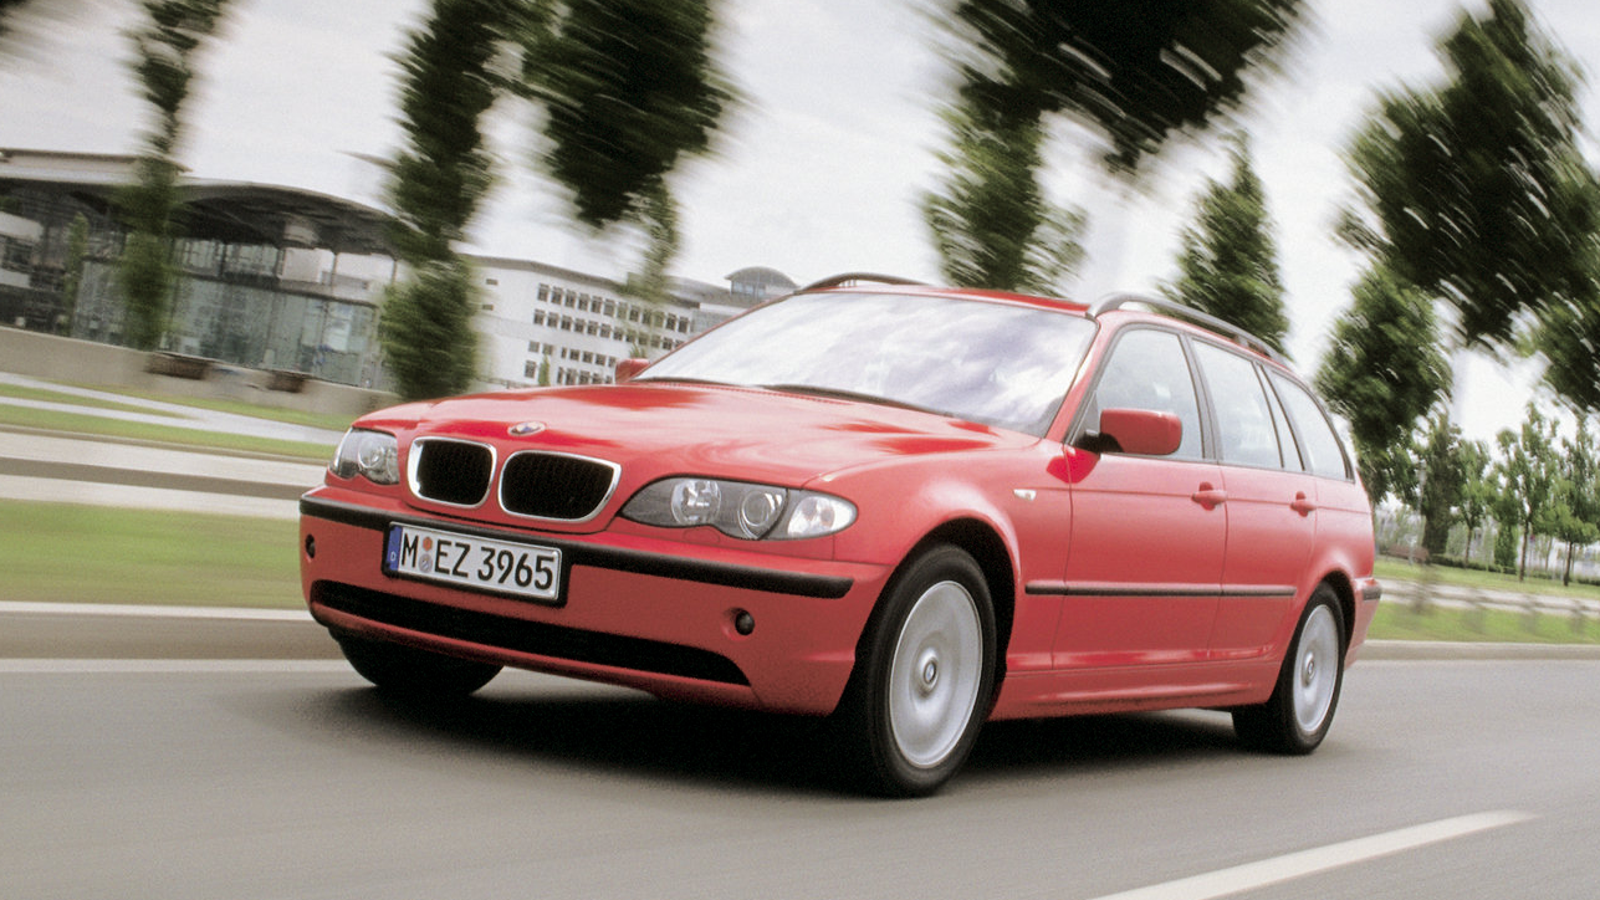 Here Are Ten Of The Best First Cars On EBay For Under $25,000